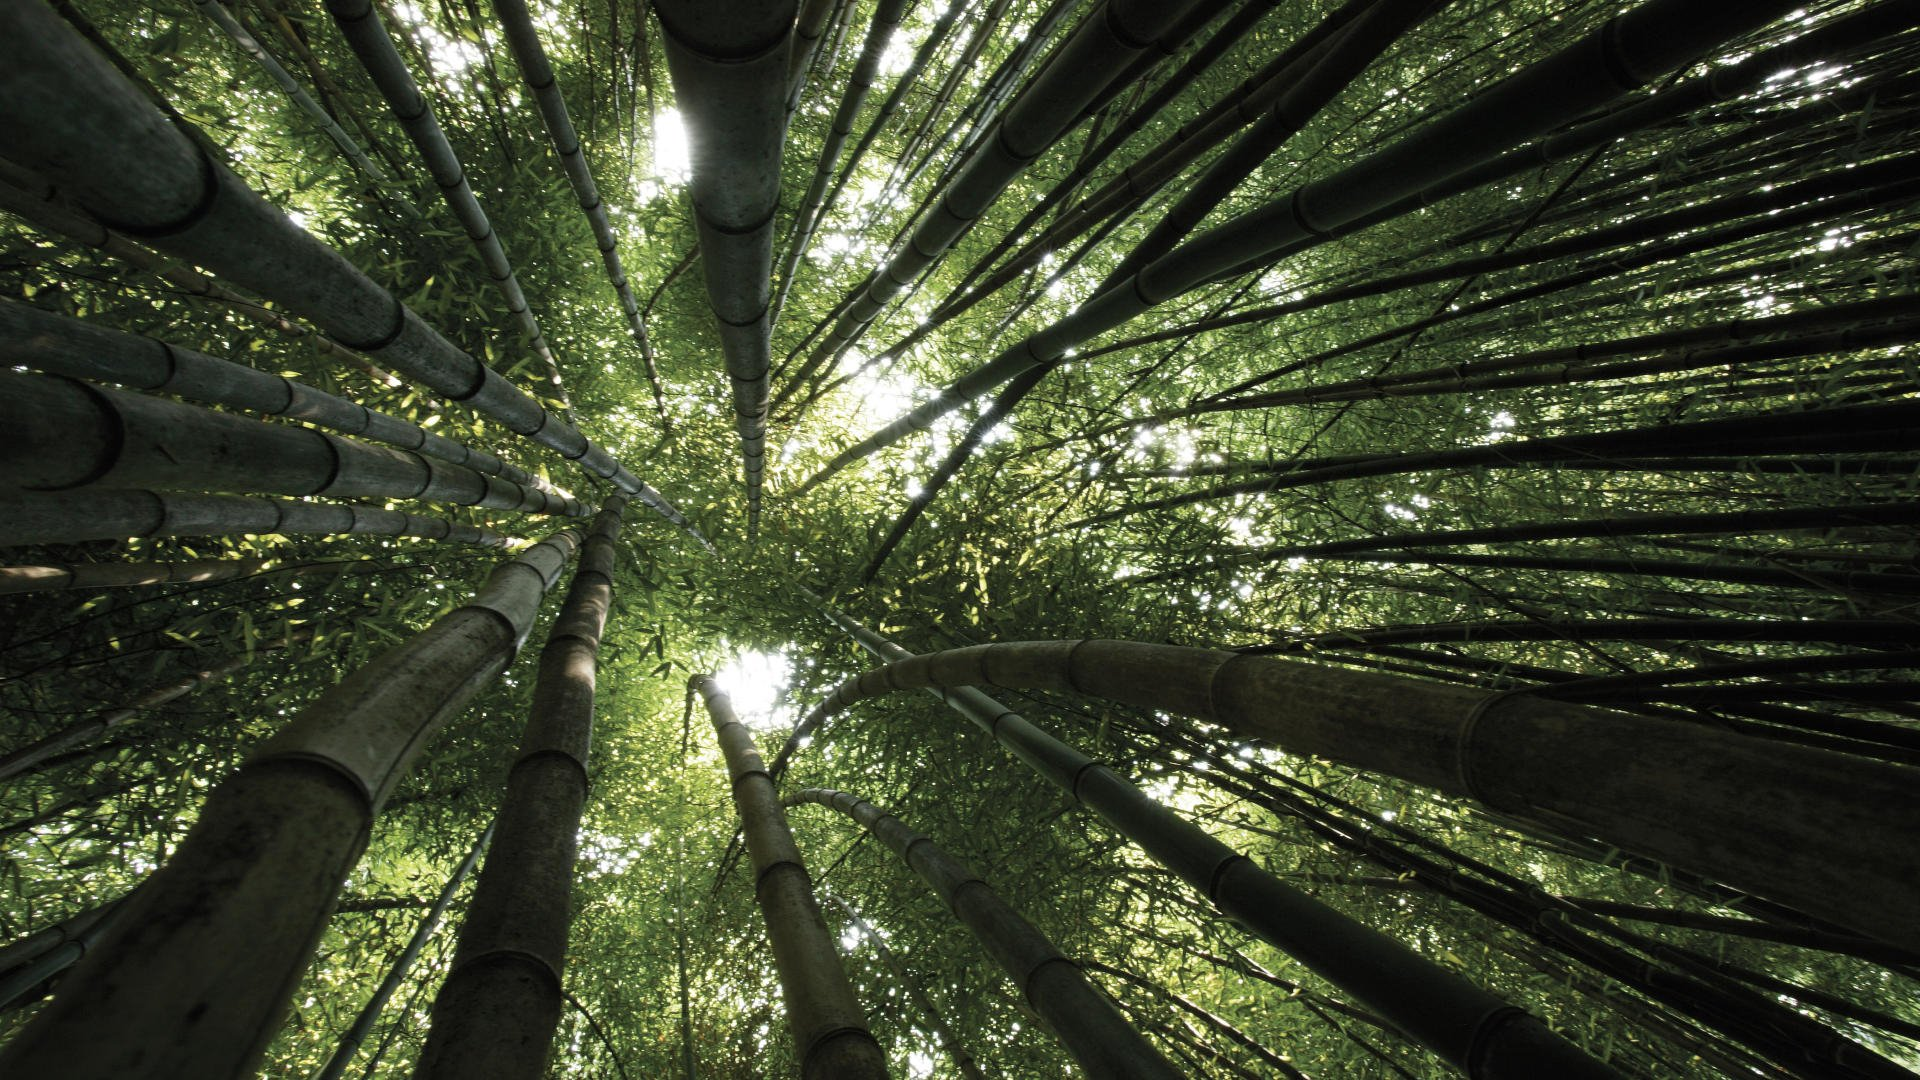 97 bamboo hd wallpapers | background images - wallpaper abyss